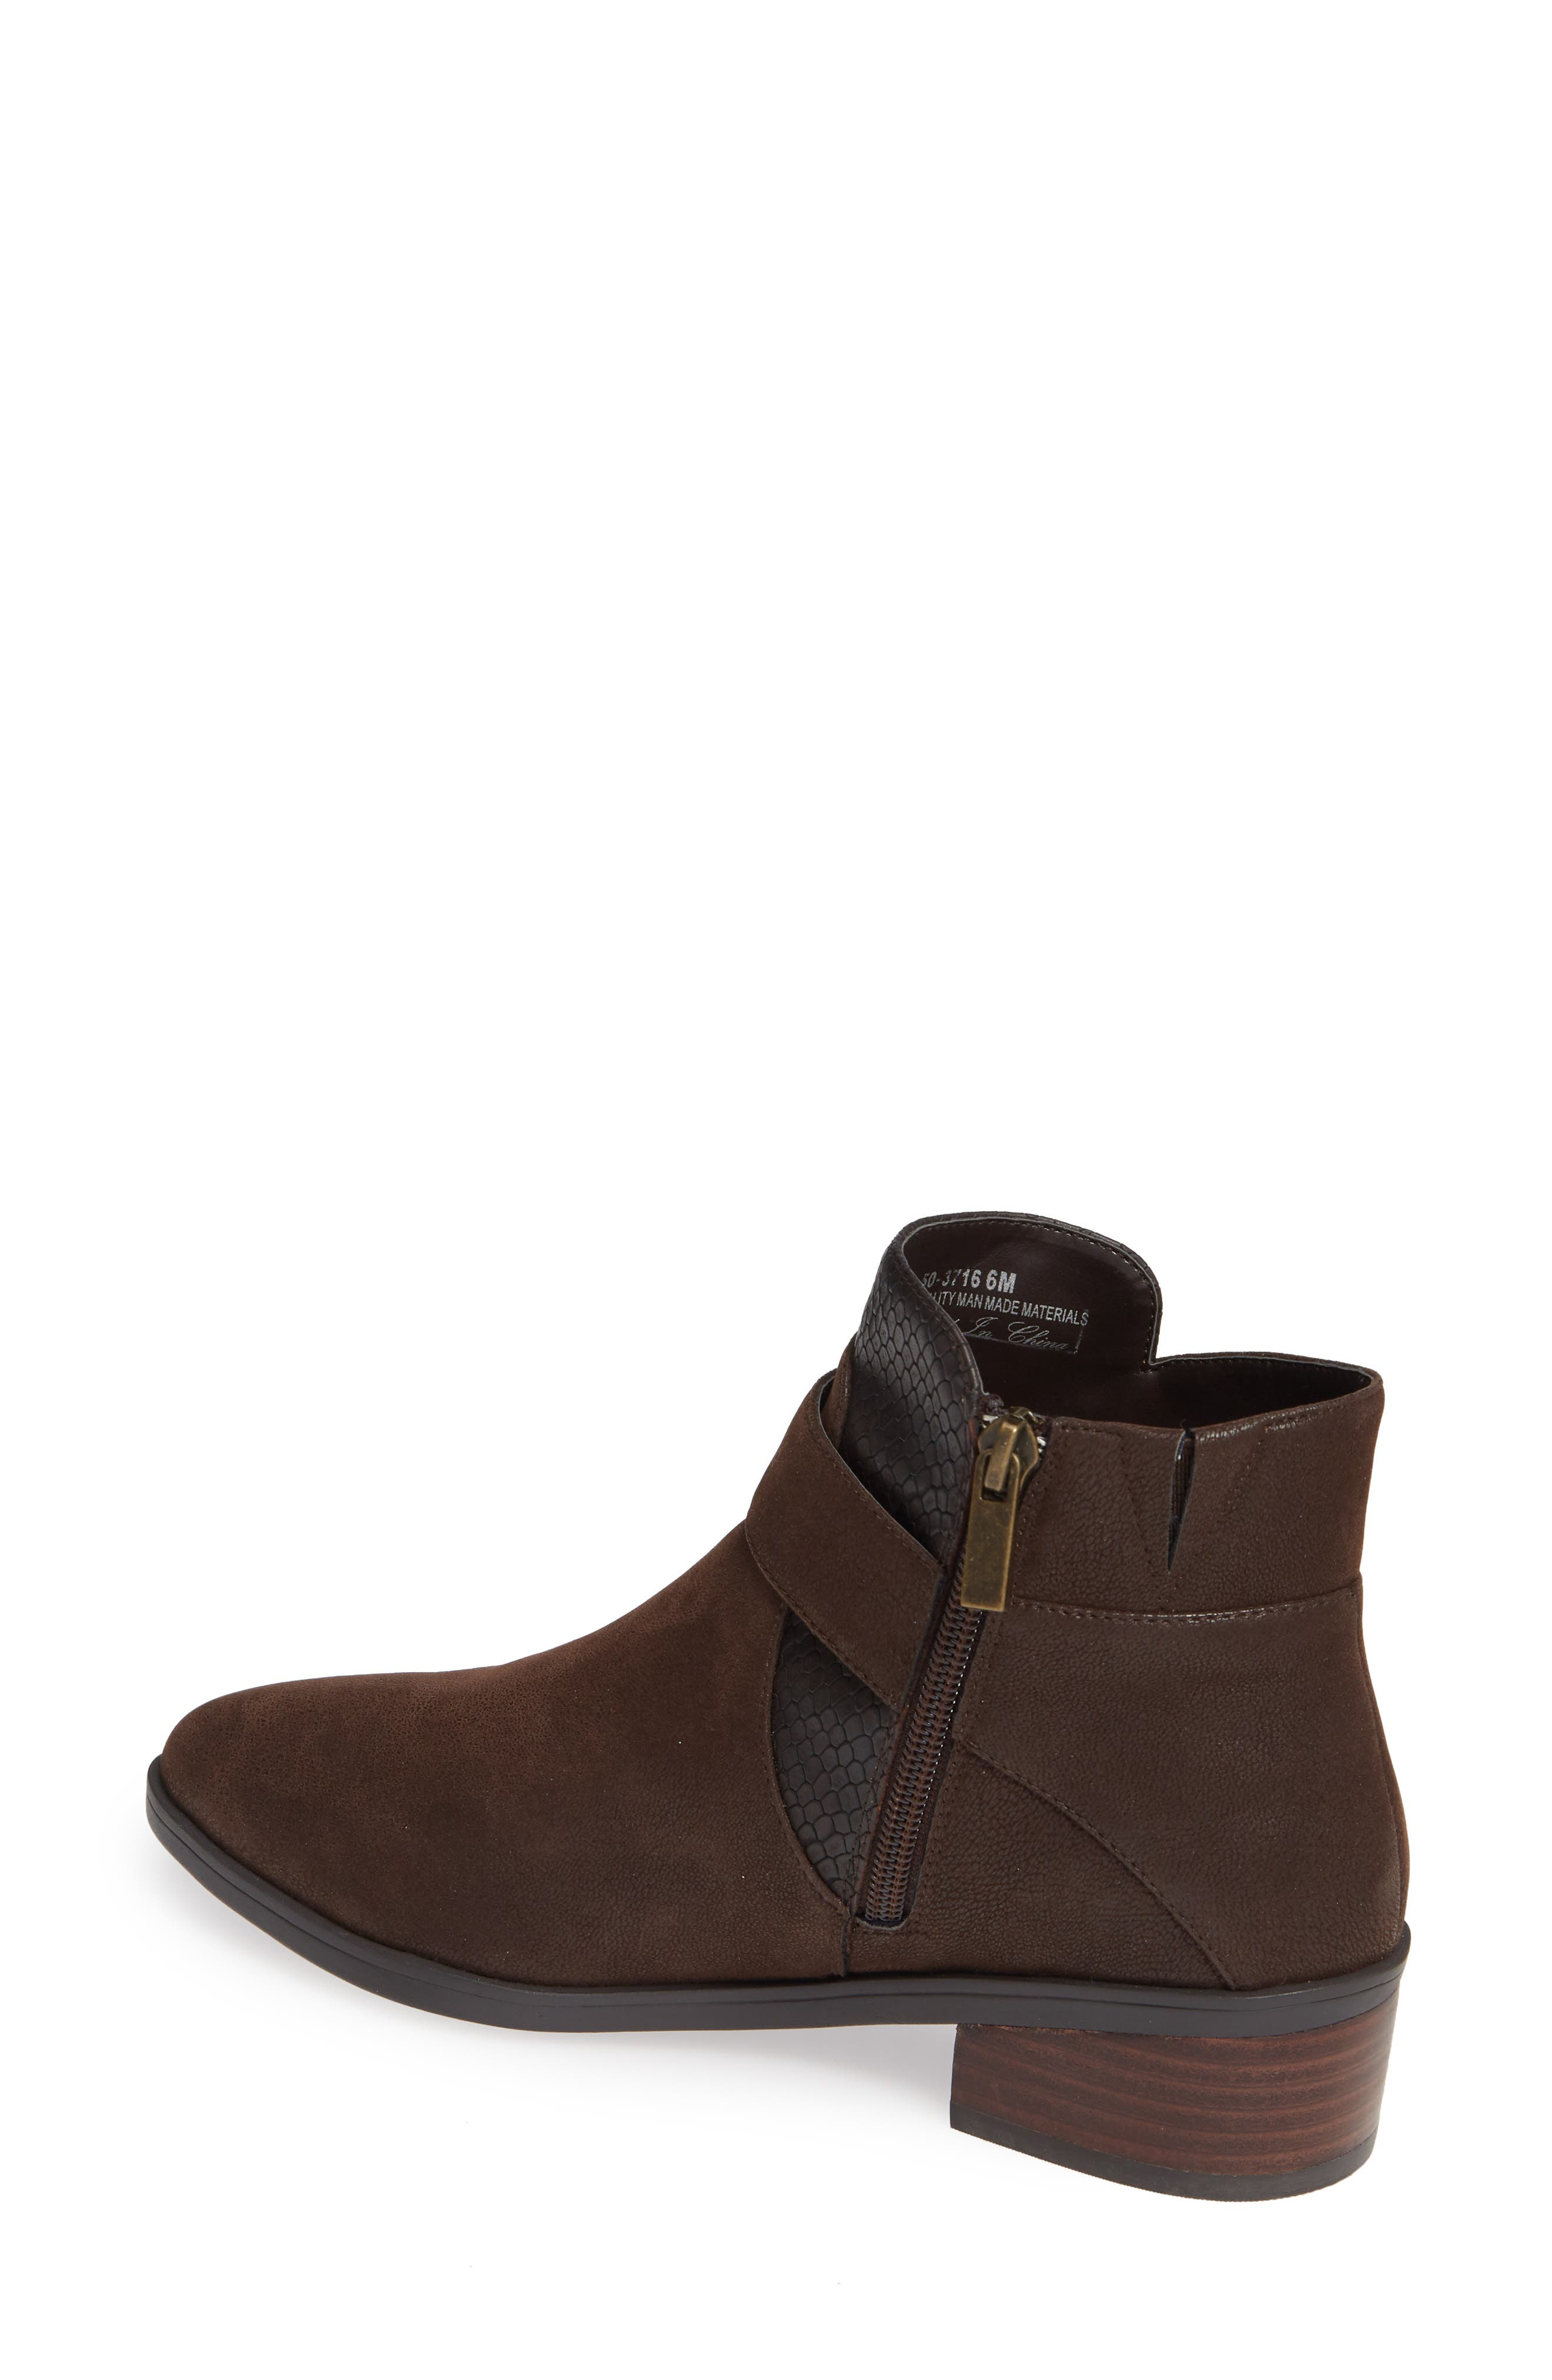 Honor II Bootie,                             Alternate thumbnail 2, color,                             BROWN LEATHER